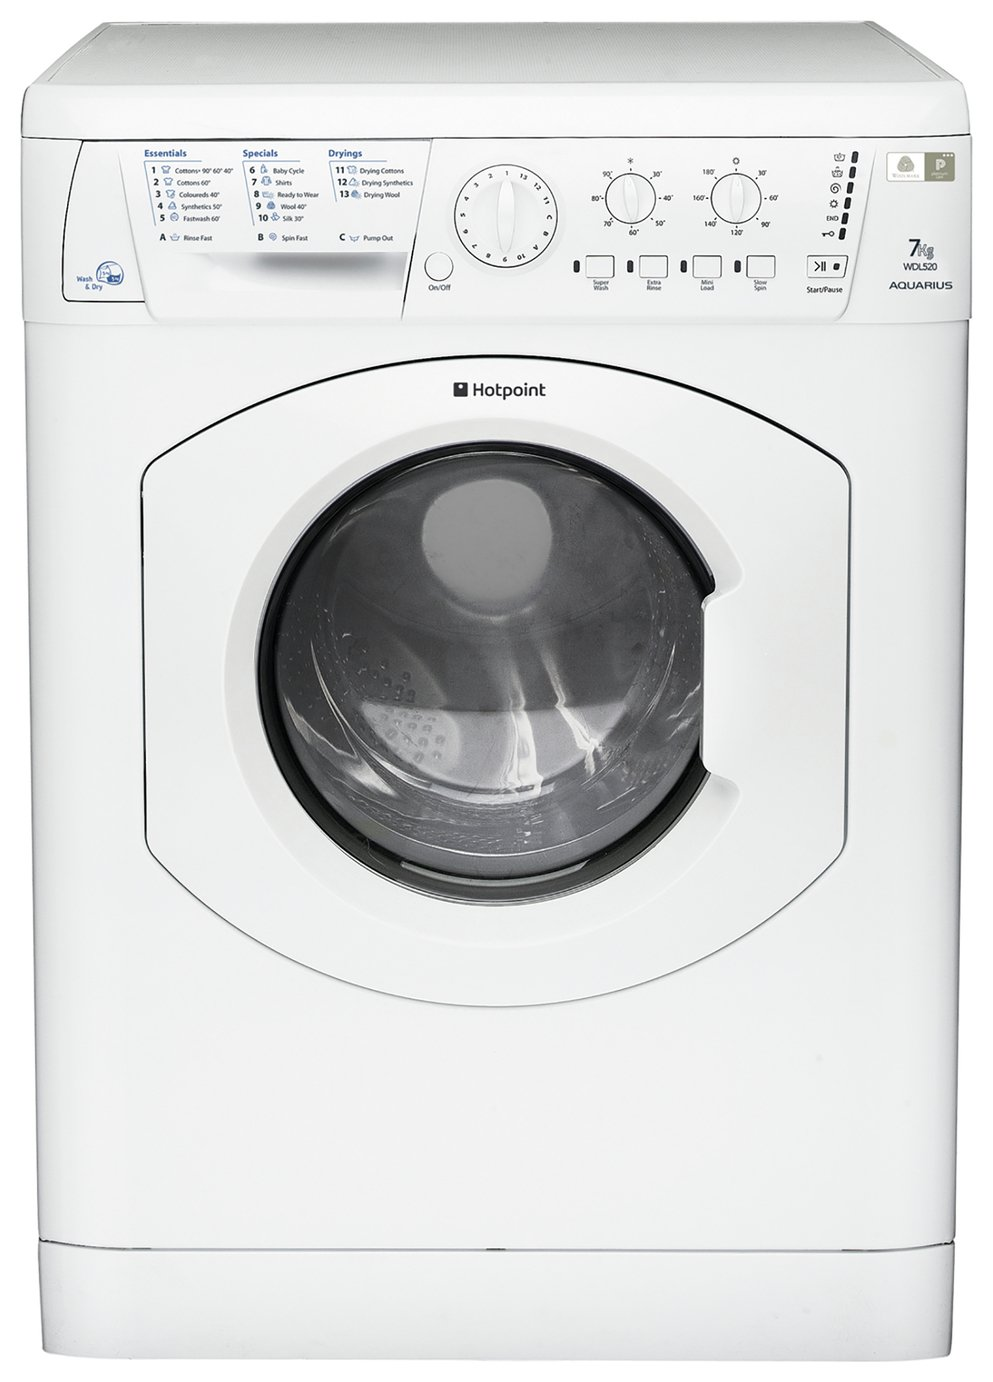 Hotpoint WDL520PUKC 6kg / 5kg Washer Dryer